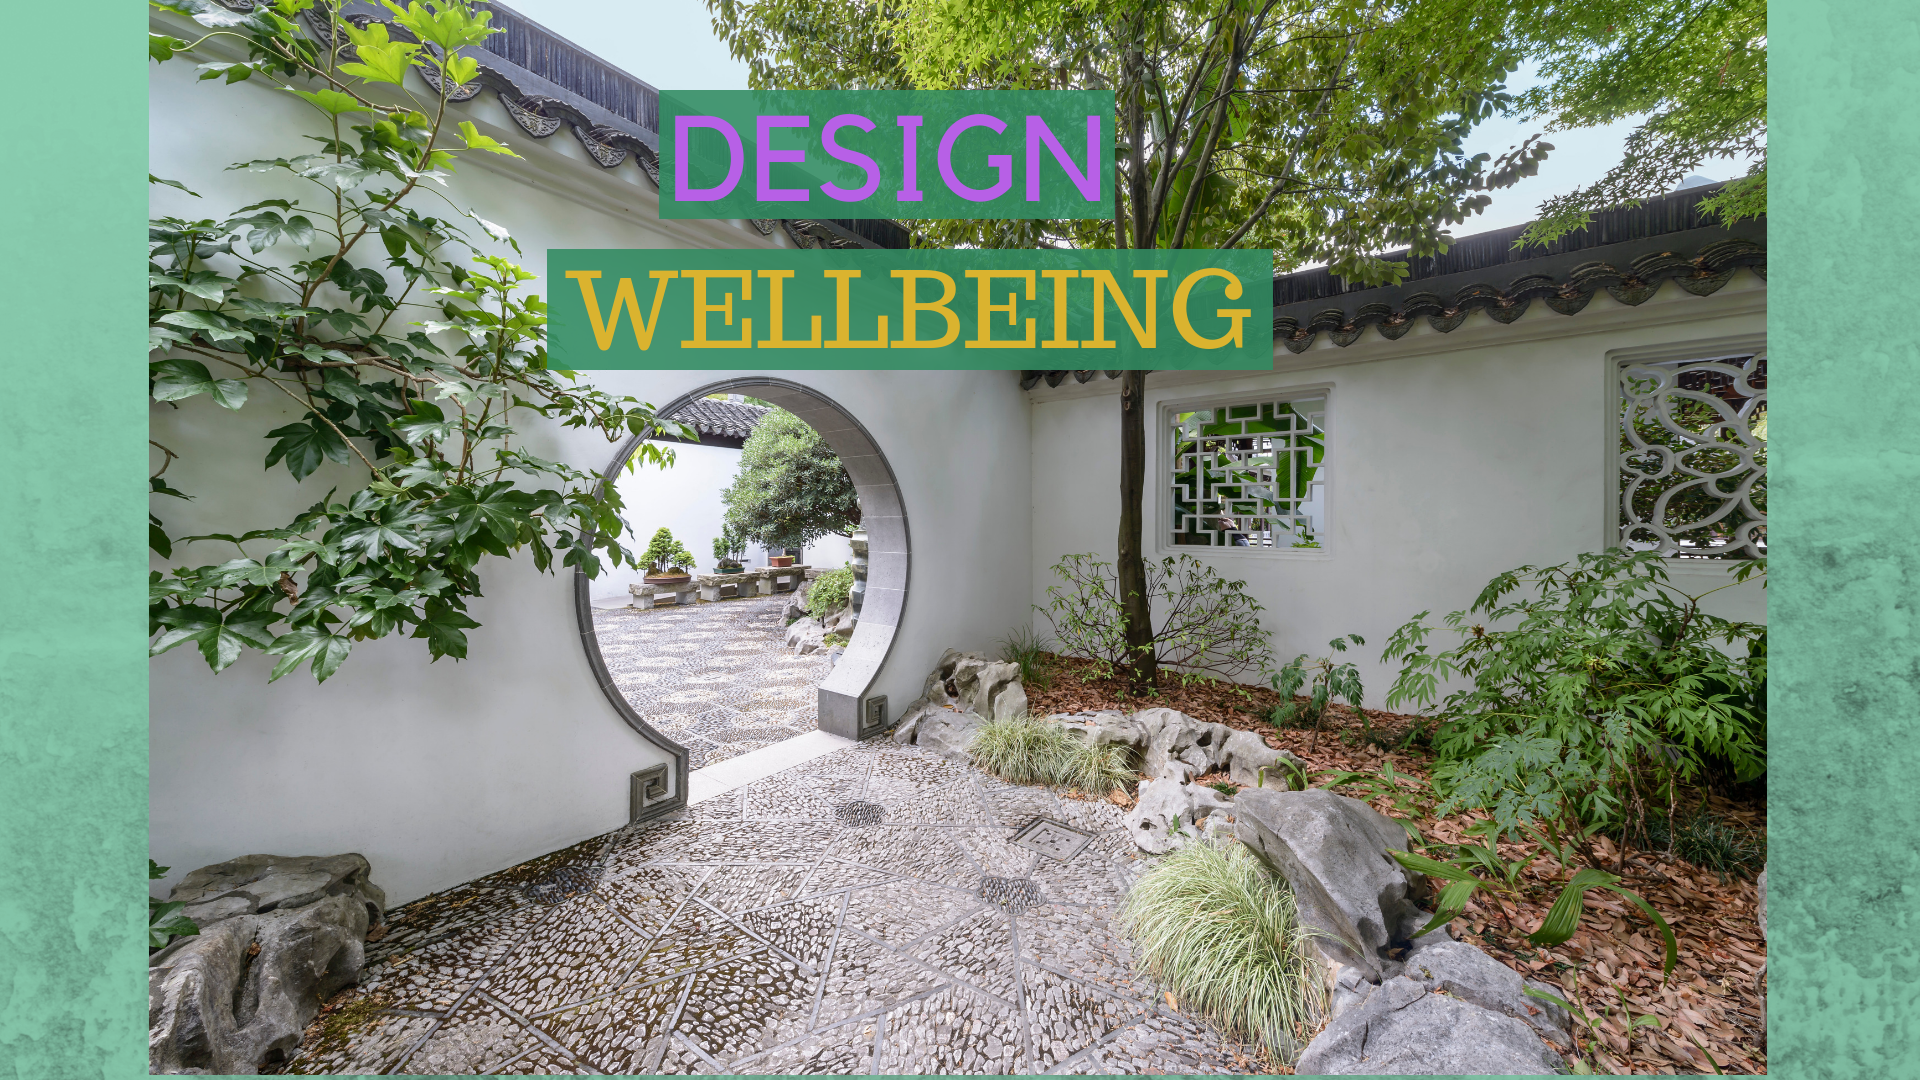 DIFFERENT WELLBEING DESIGN (3)